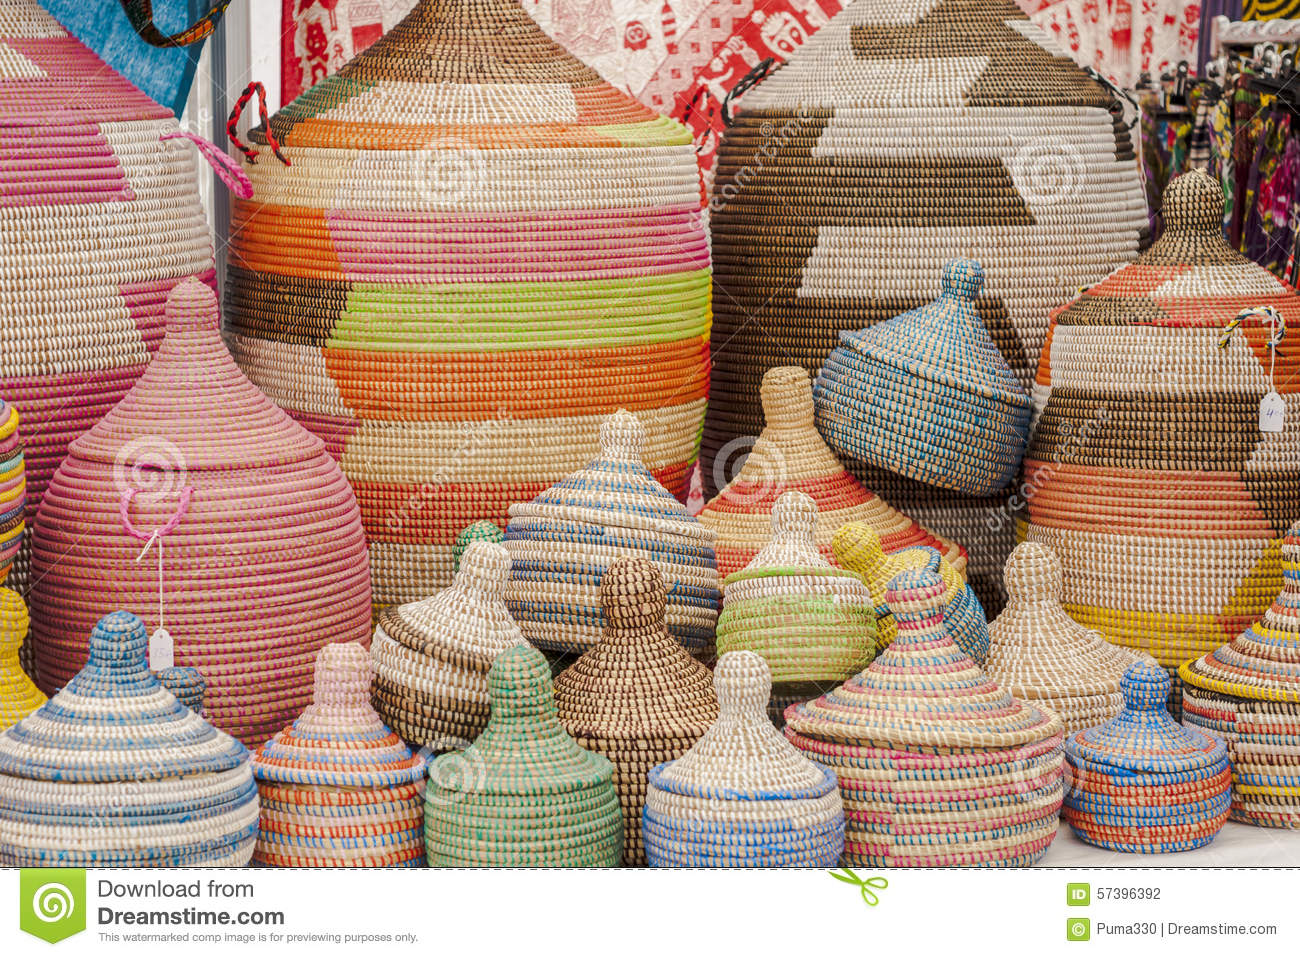 Handmade Baskets From Africa : Colorful handmade african baskets stock photo image